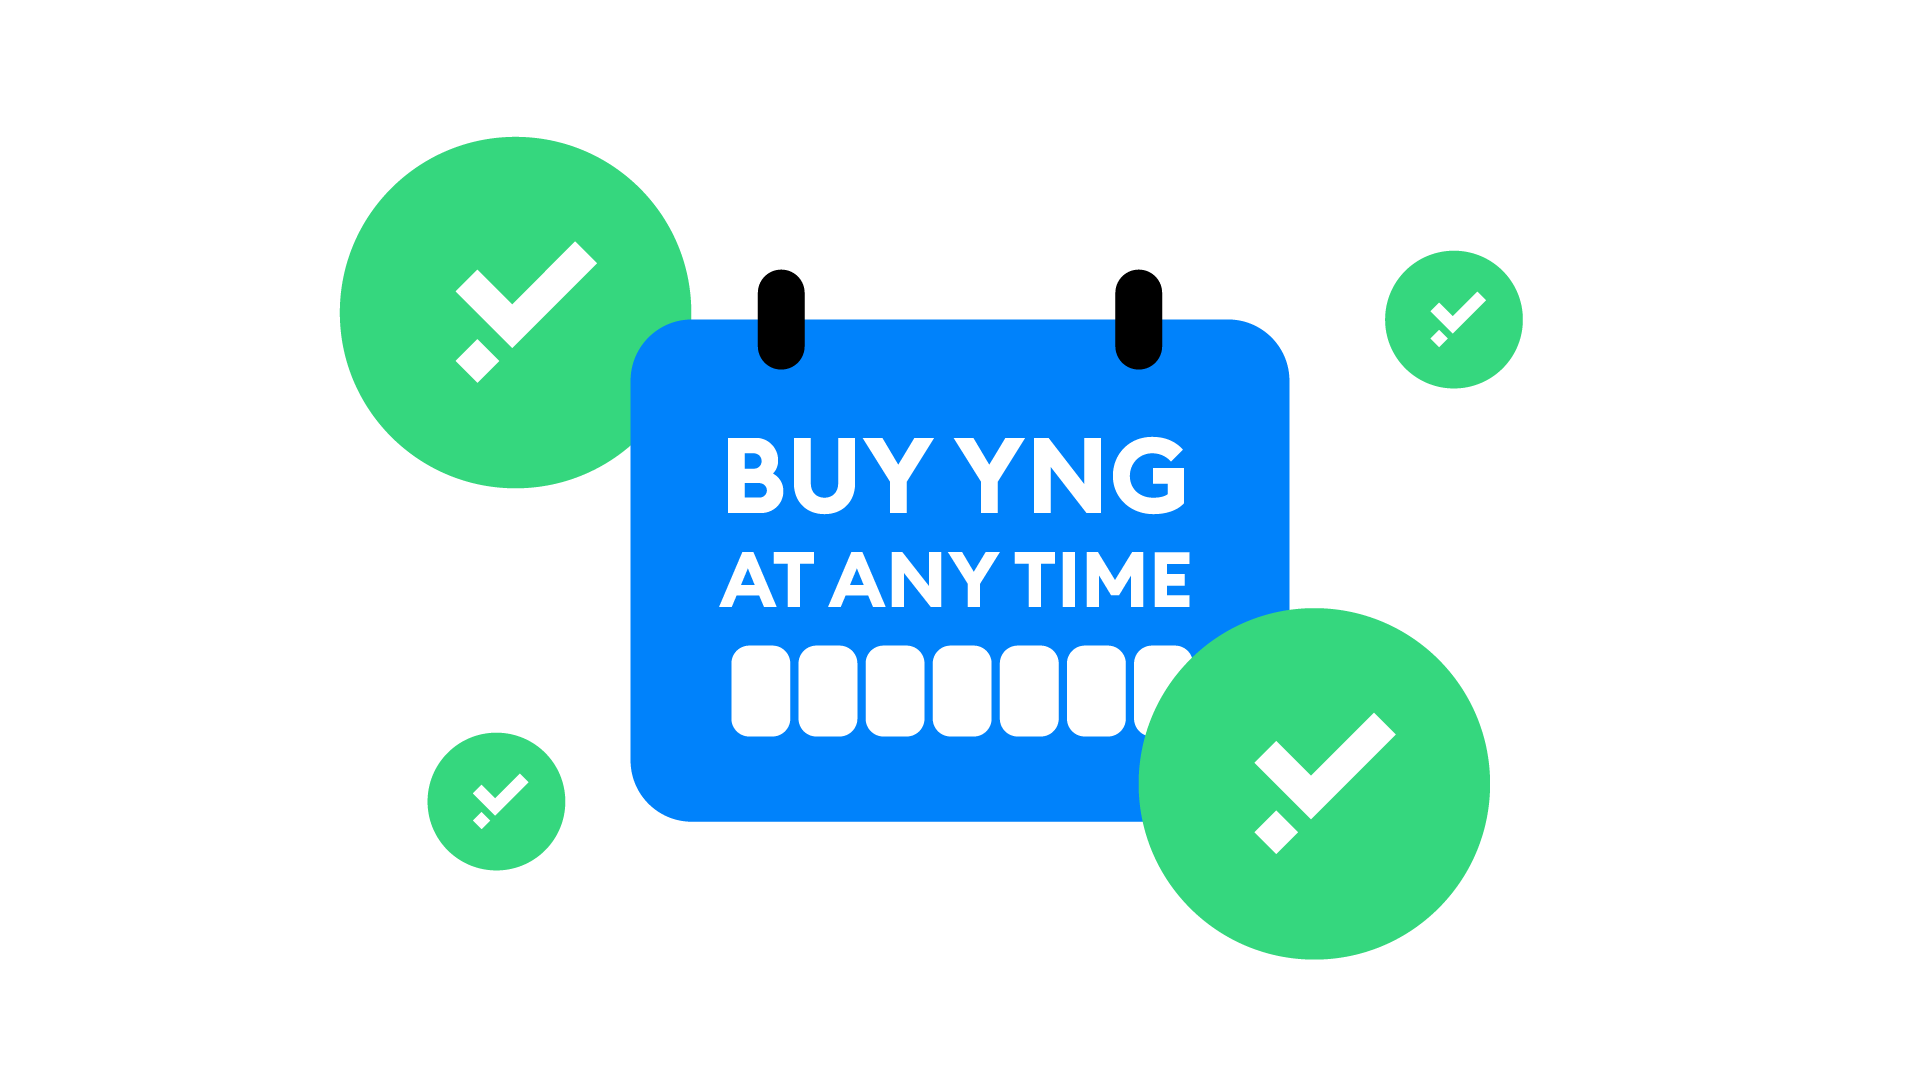 Buy the YNG token at any time!